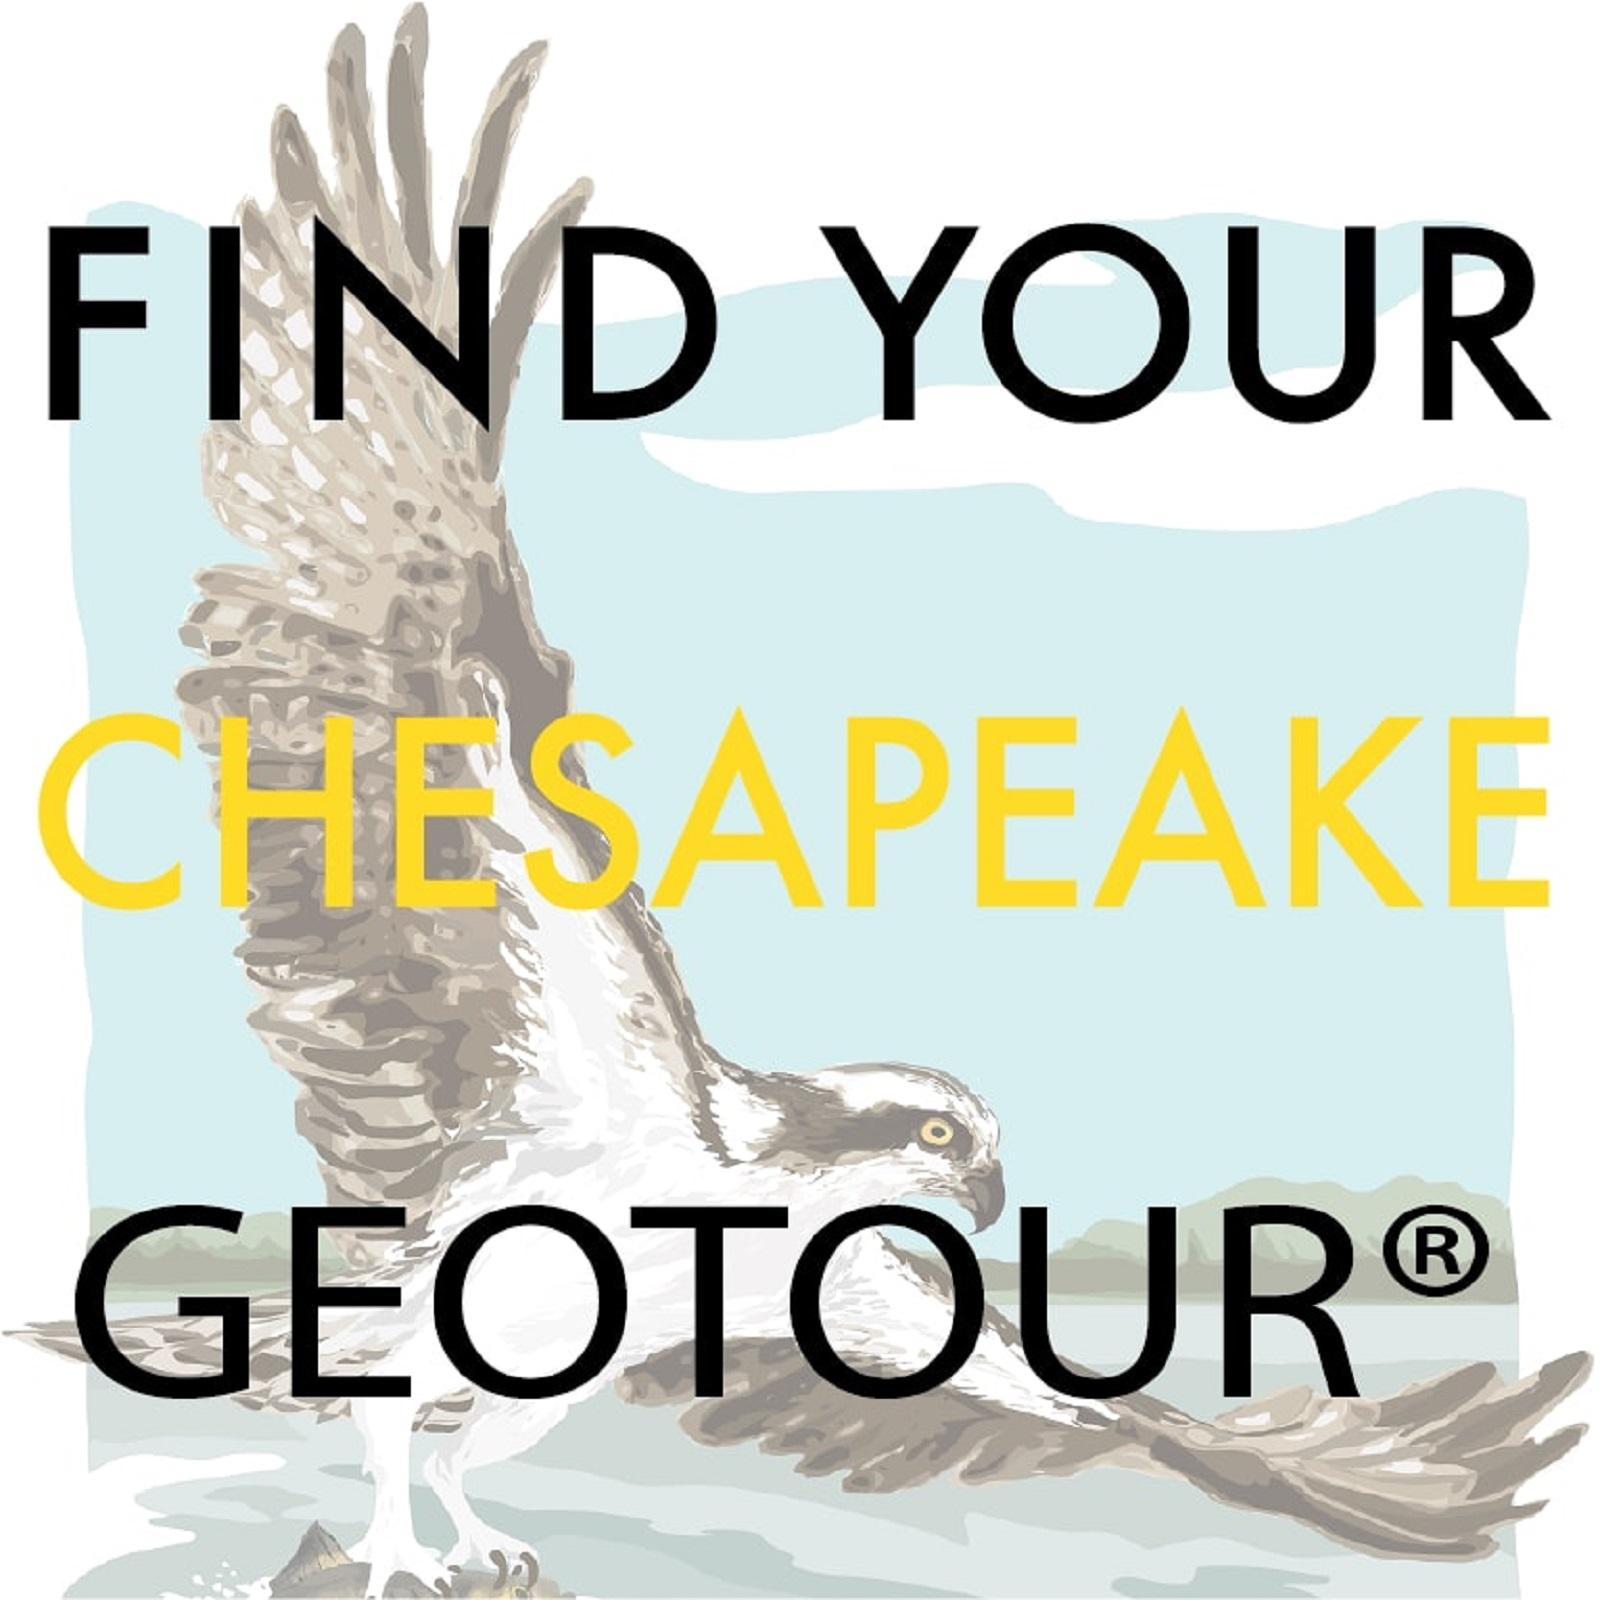 Find Your Chesapeake Geotour